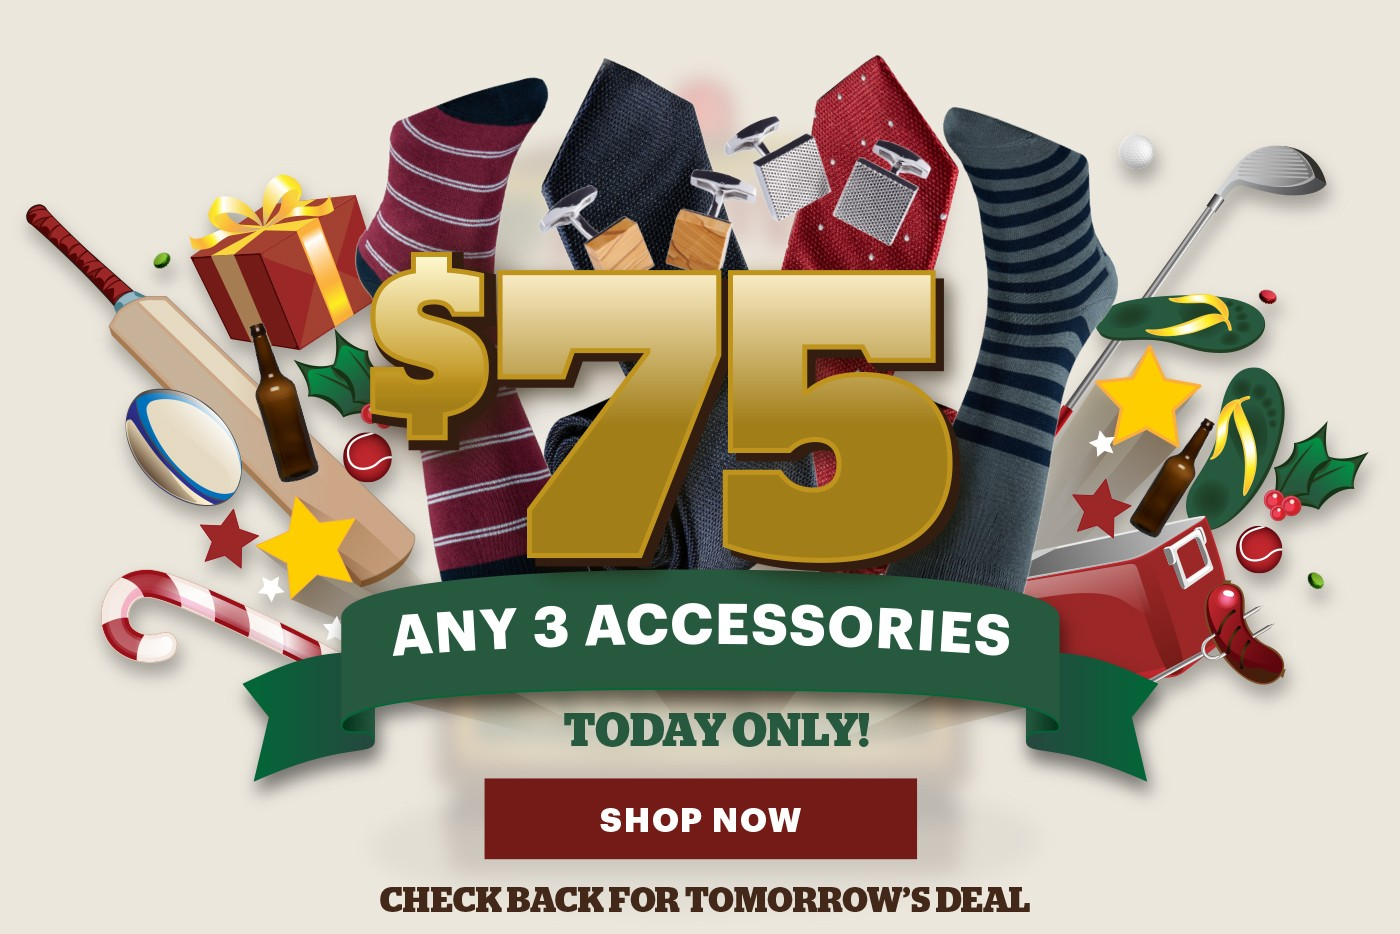 Bargain - only $75 - Any 3 Accessories @ 3 Wise Men